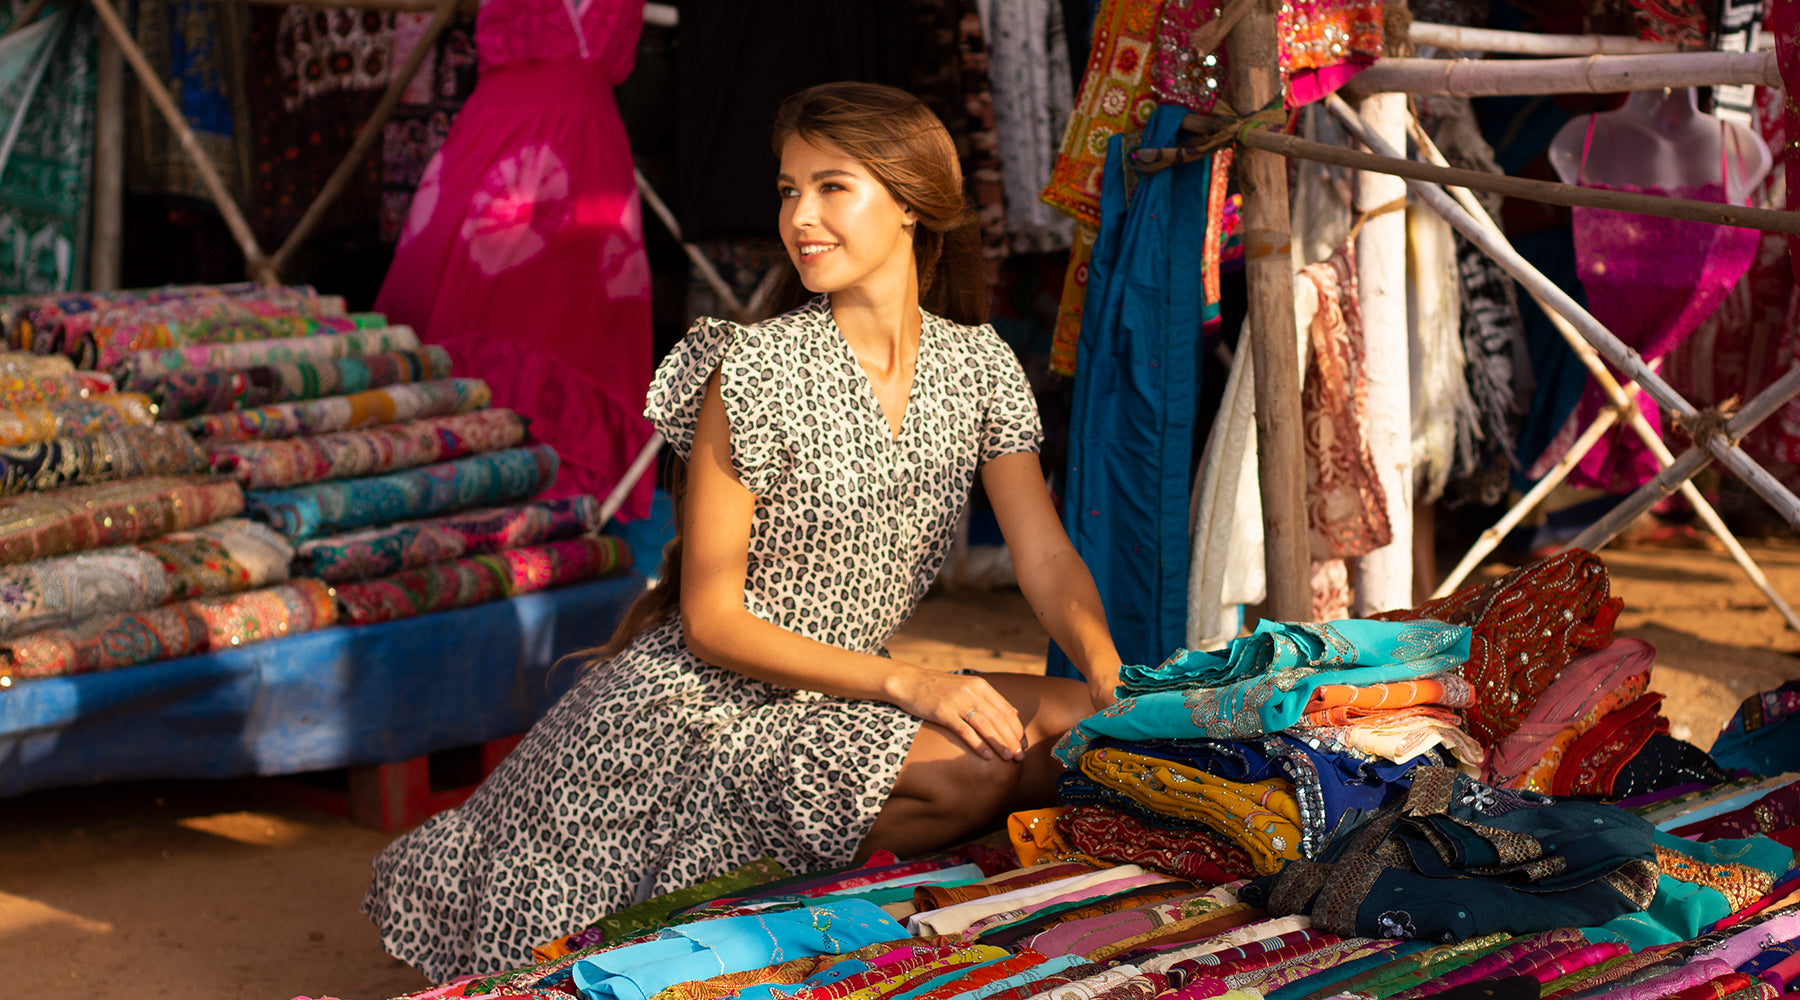 Shopping in an India Market wearing the Kelly Dress from JeS Lifestyle.